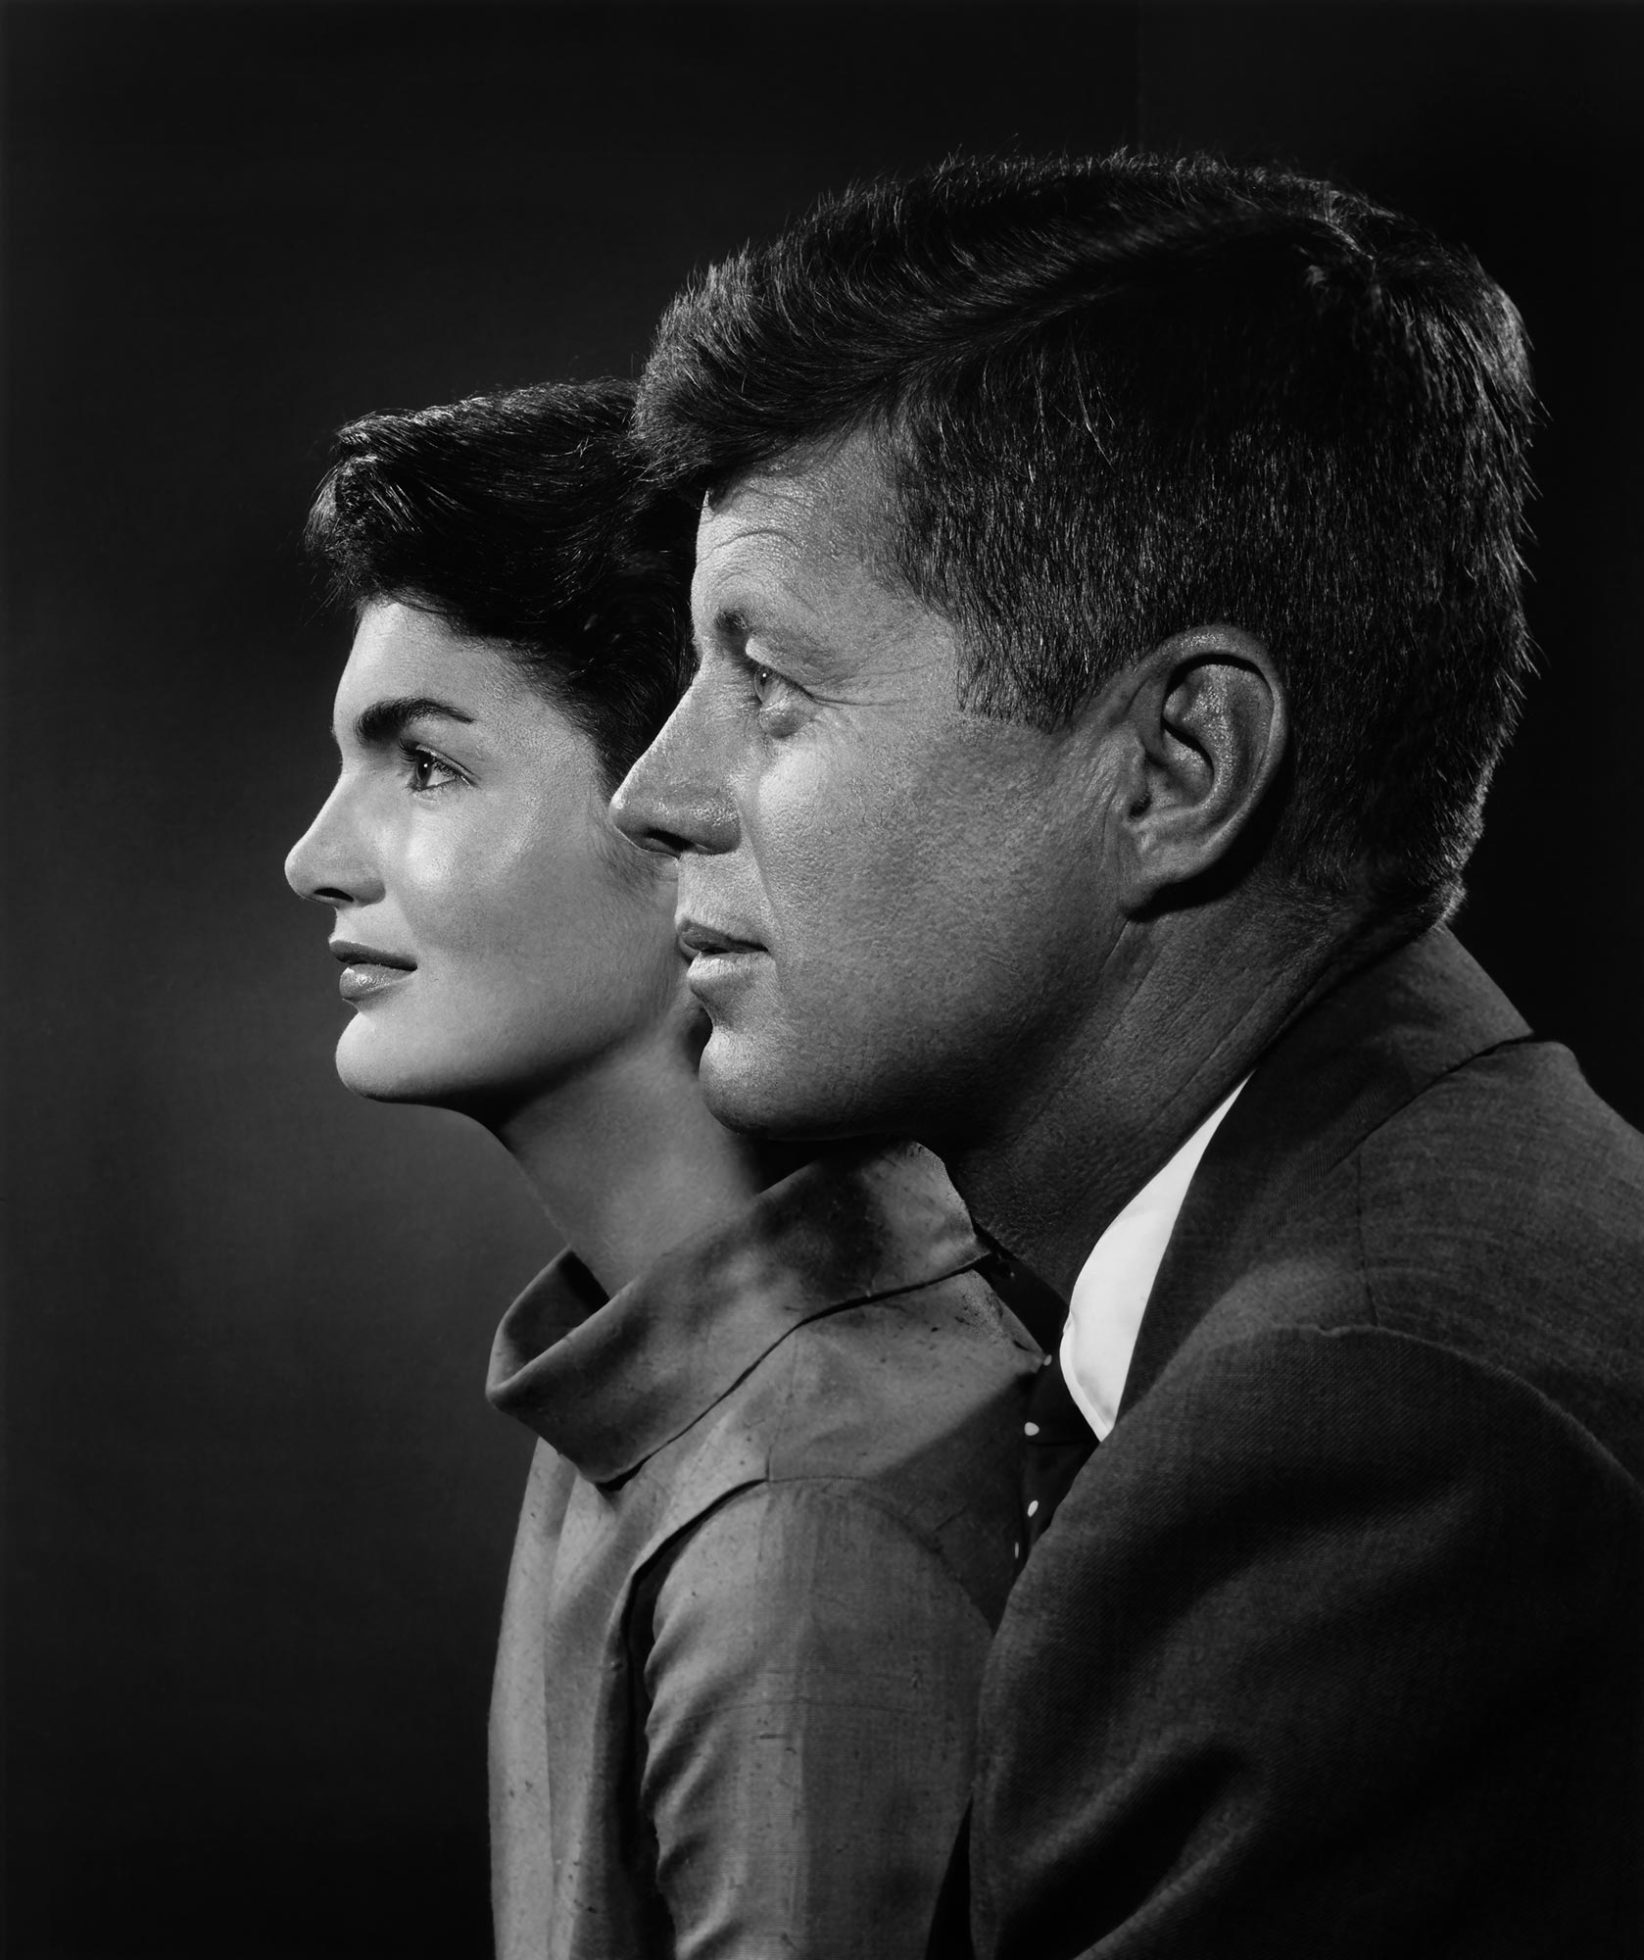 John and jacqueline kennedy yousuf karsh for Jackie kennedy movie